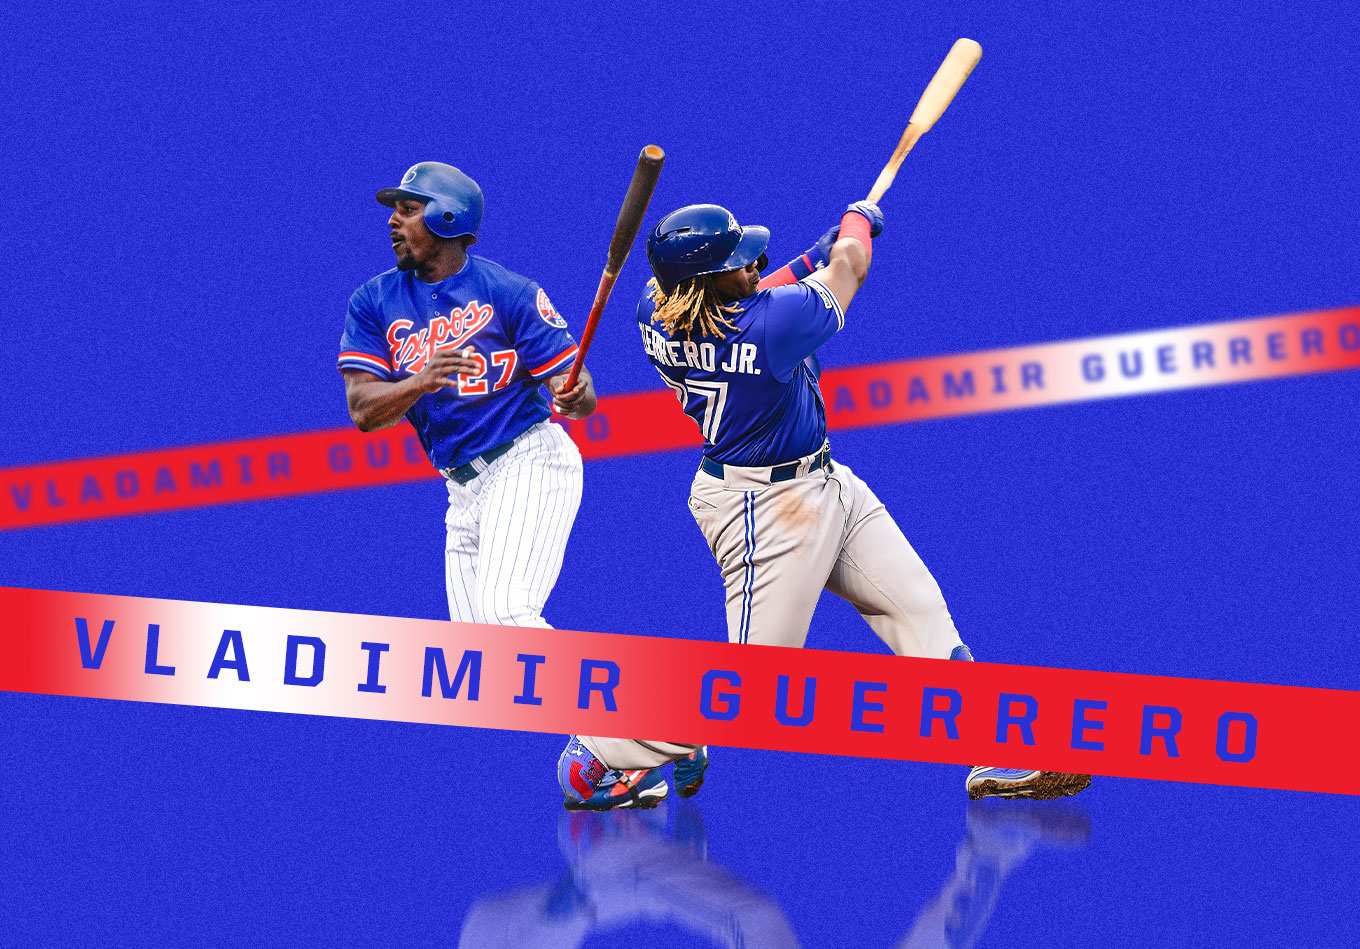 Will Vladimir Guerrero Jr. Be Even Better Than His Hall of Fame Father?